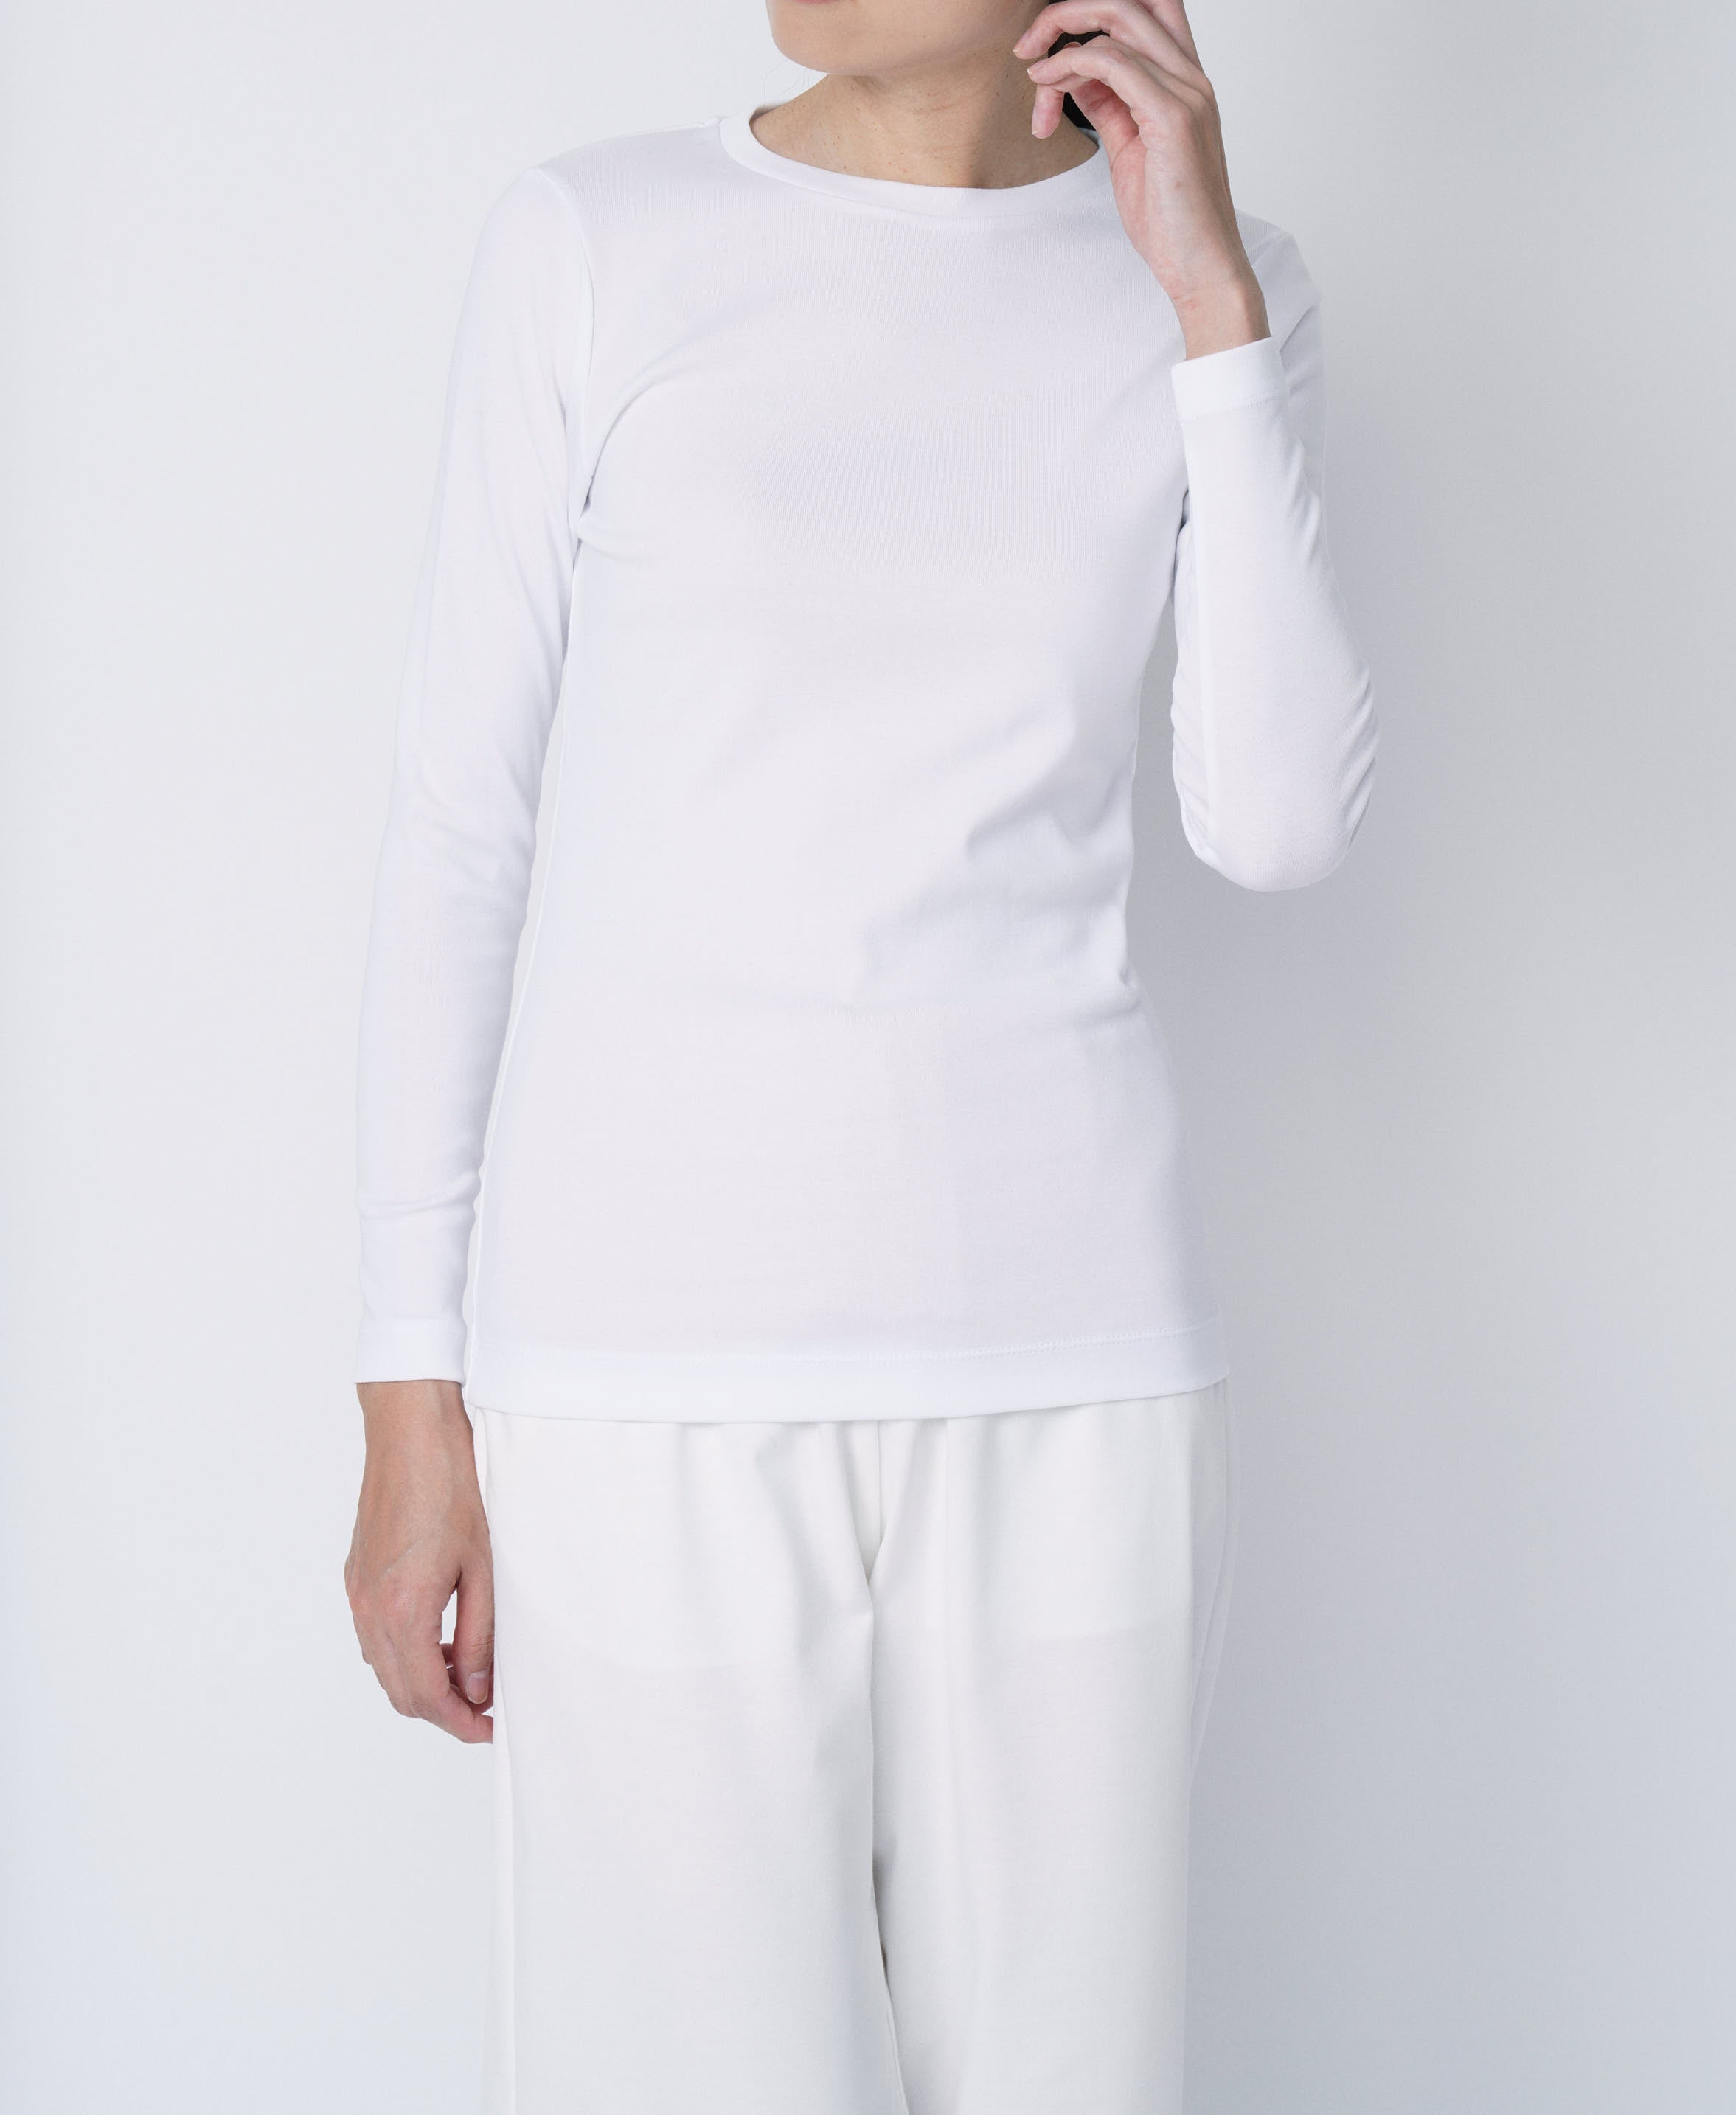 TL-9208 / Tight Milling Small Neck Long Sleeve T Shirt